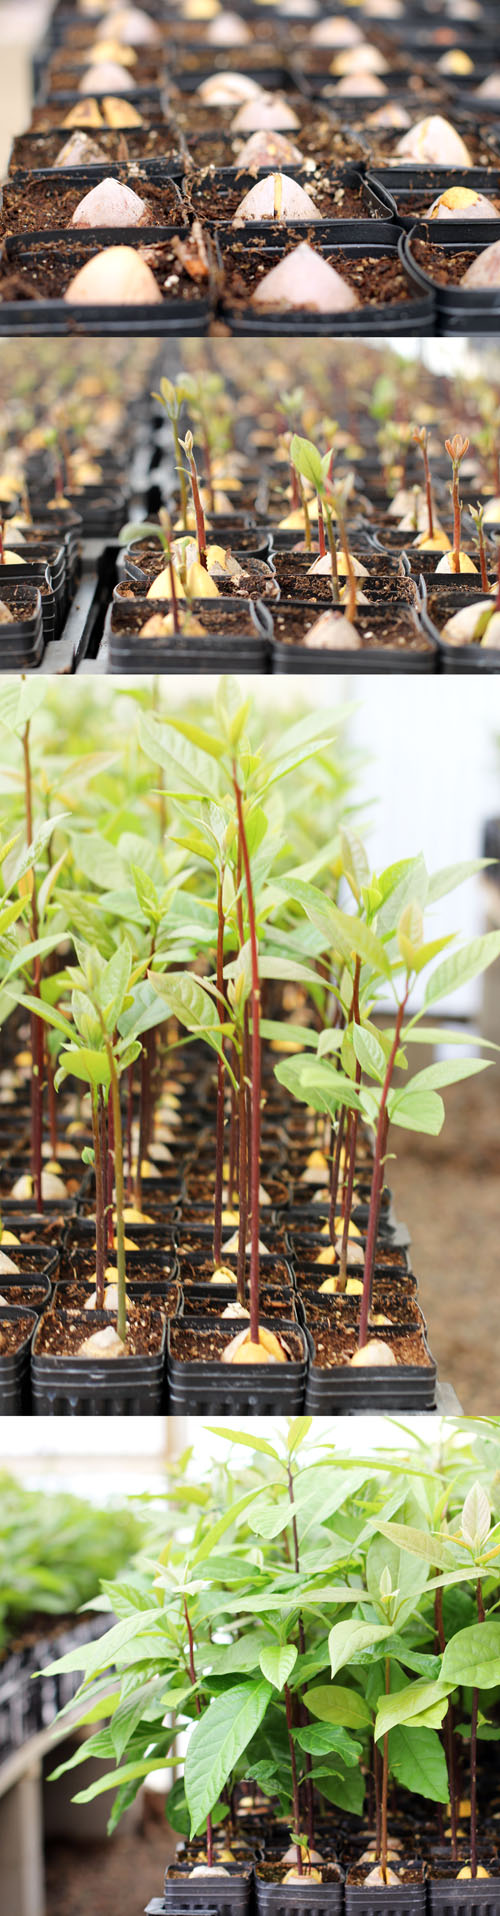 growing avocado trees at persea tree nursery in california by @janemaynard